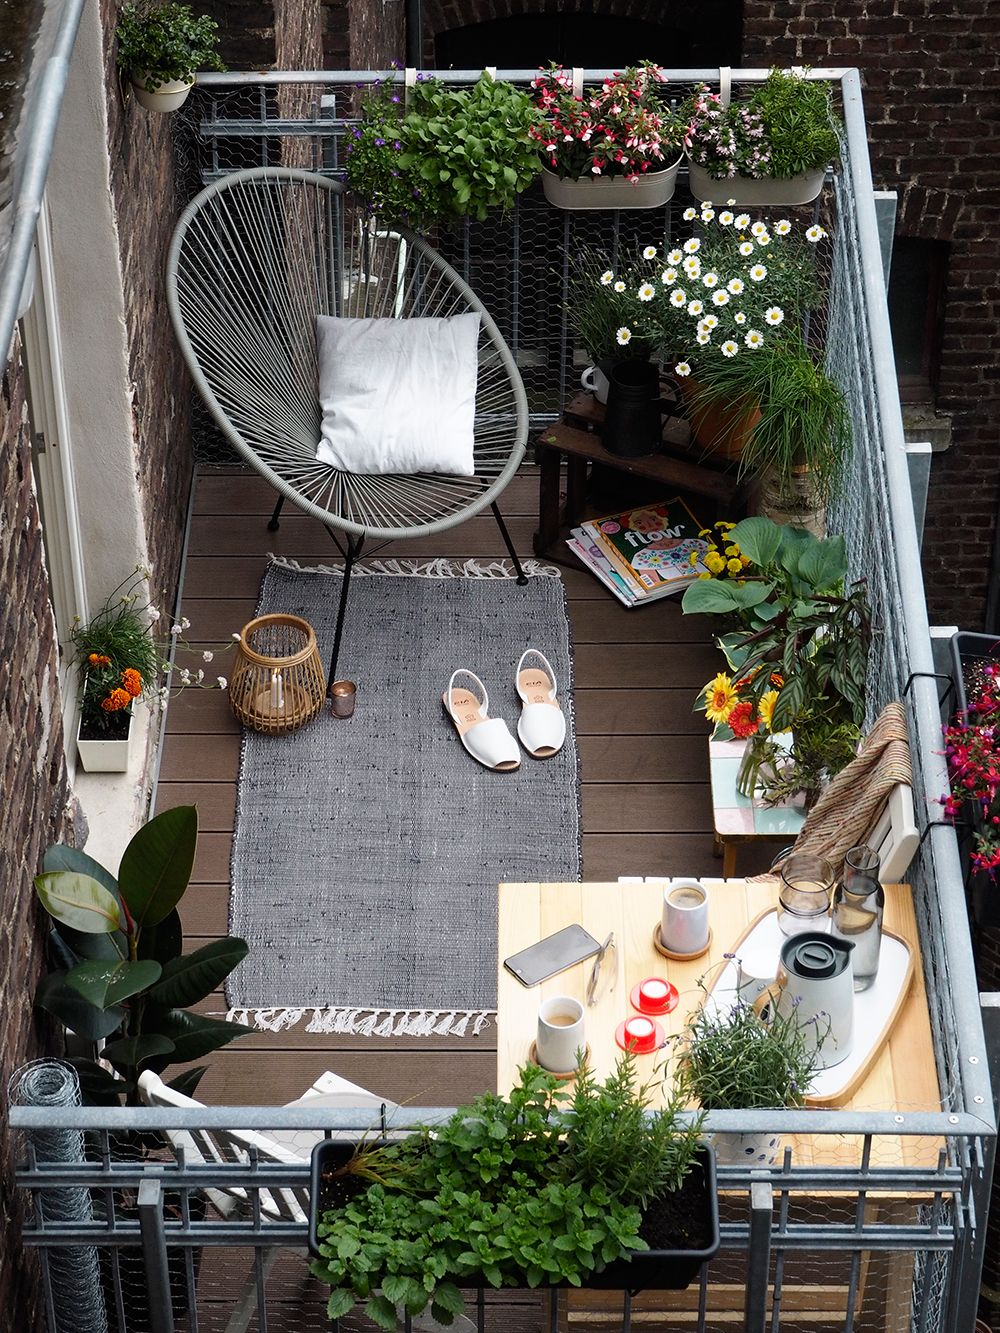 kleine zimmerrenovierung garten diy dekor, the great outdoors, small space style: 10 tiny balconies | design, Innenarchitektur